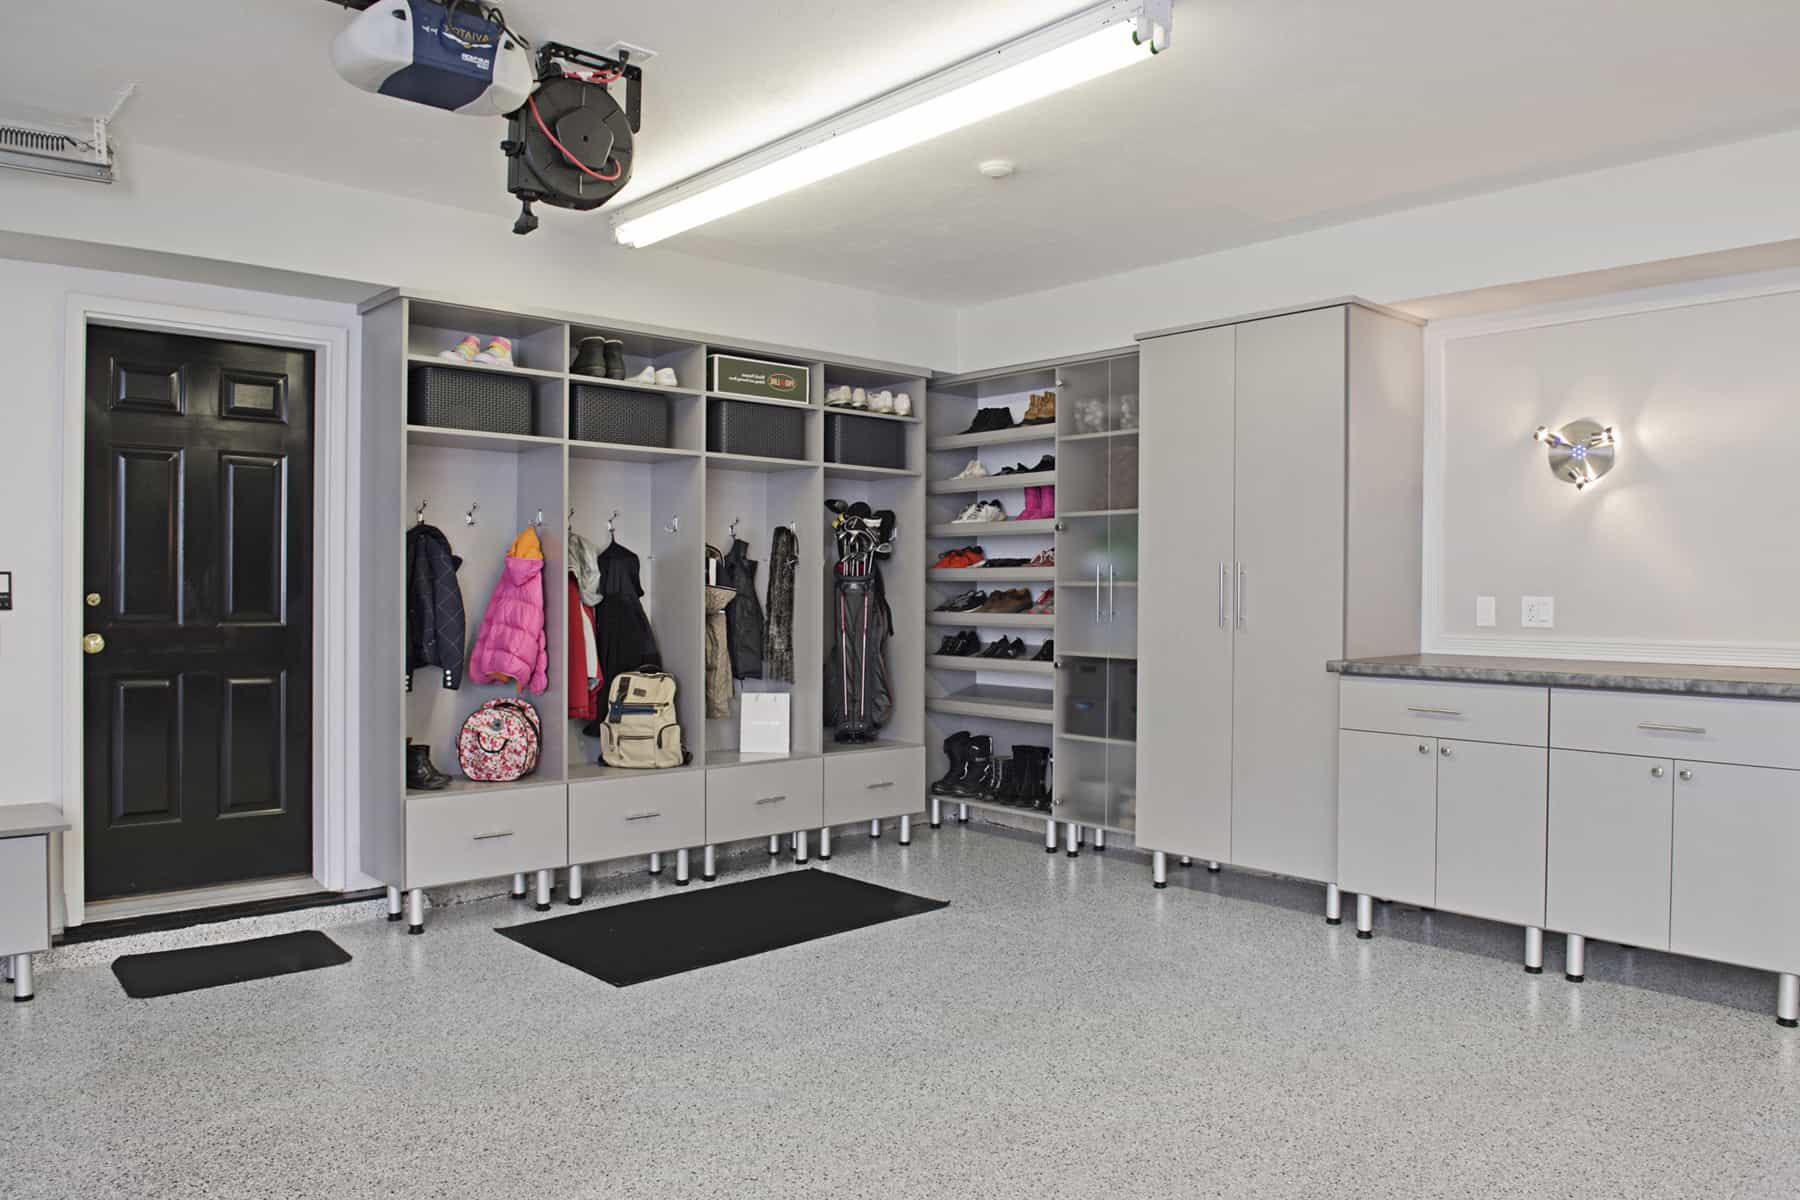 Contemporary Garage Shelves And Storage Organization (Image 3 of 10)